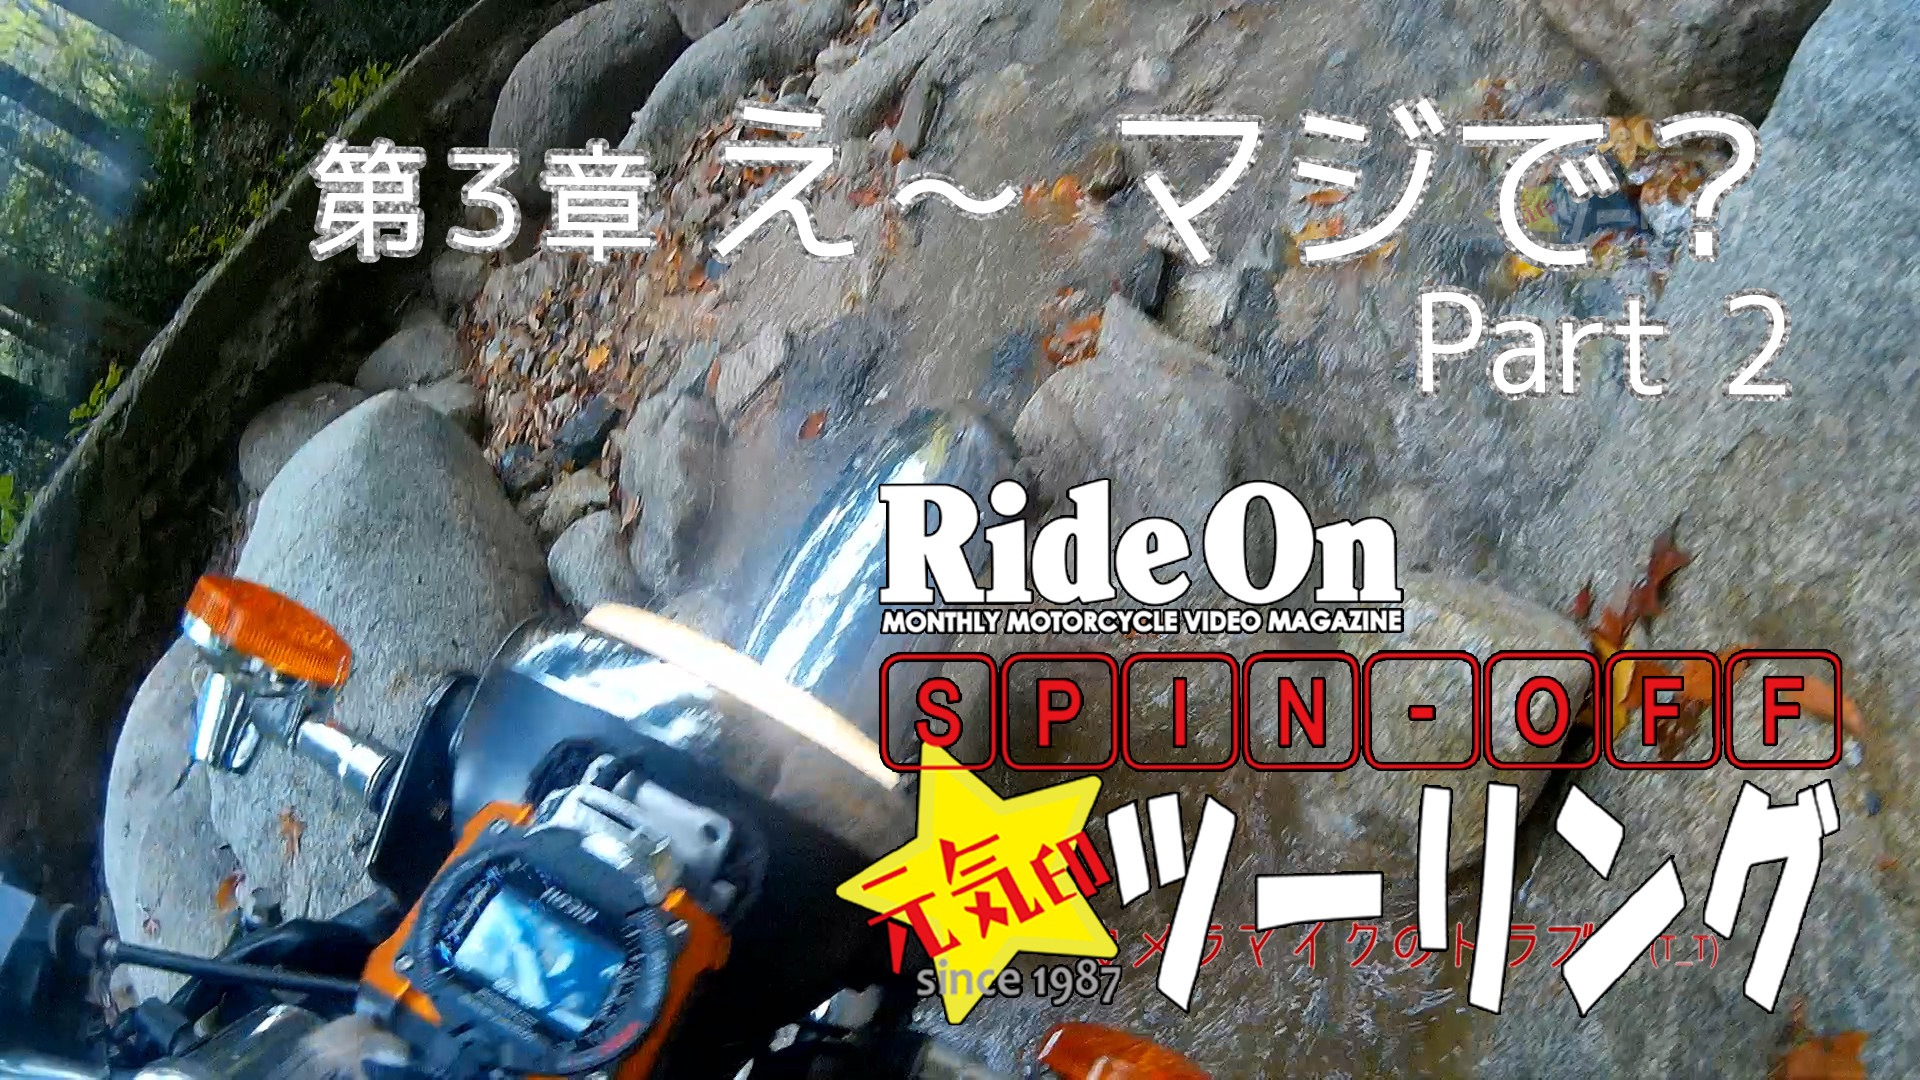 RIDE ON SPIN OFF 企画「元気印ツーリング」第3章(え~ マジで? Part 2)